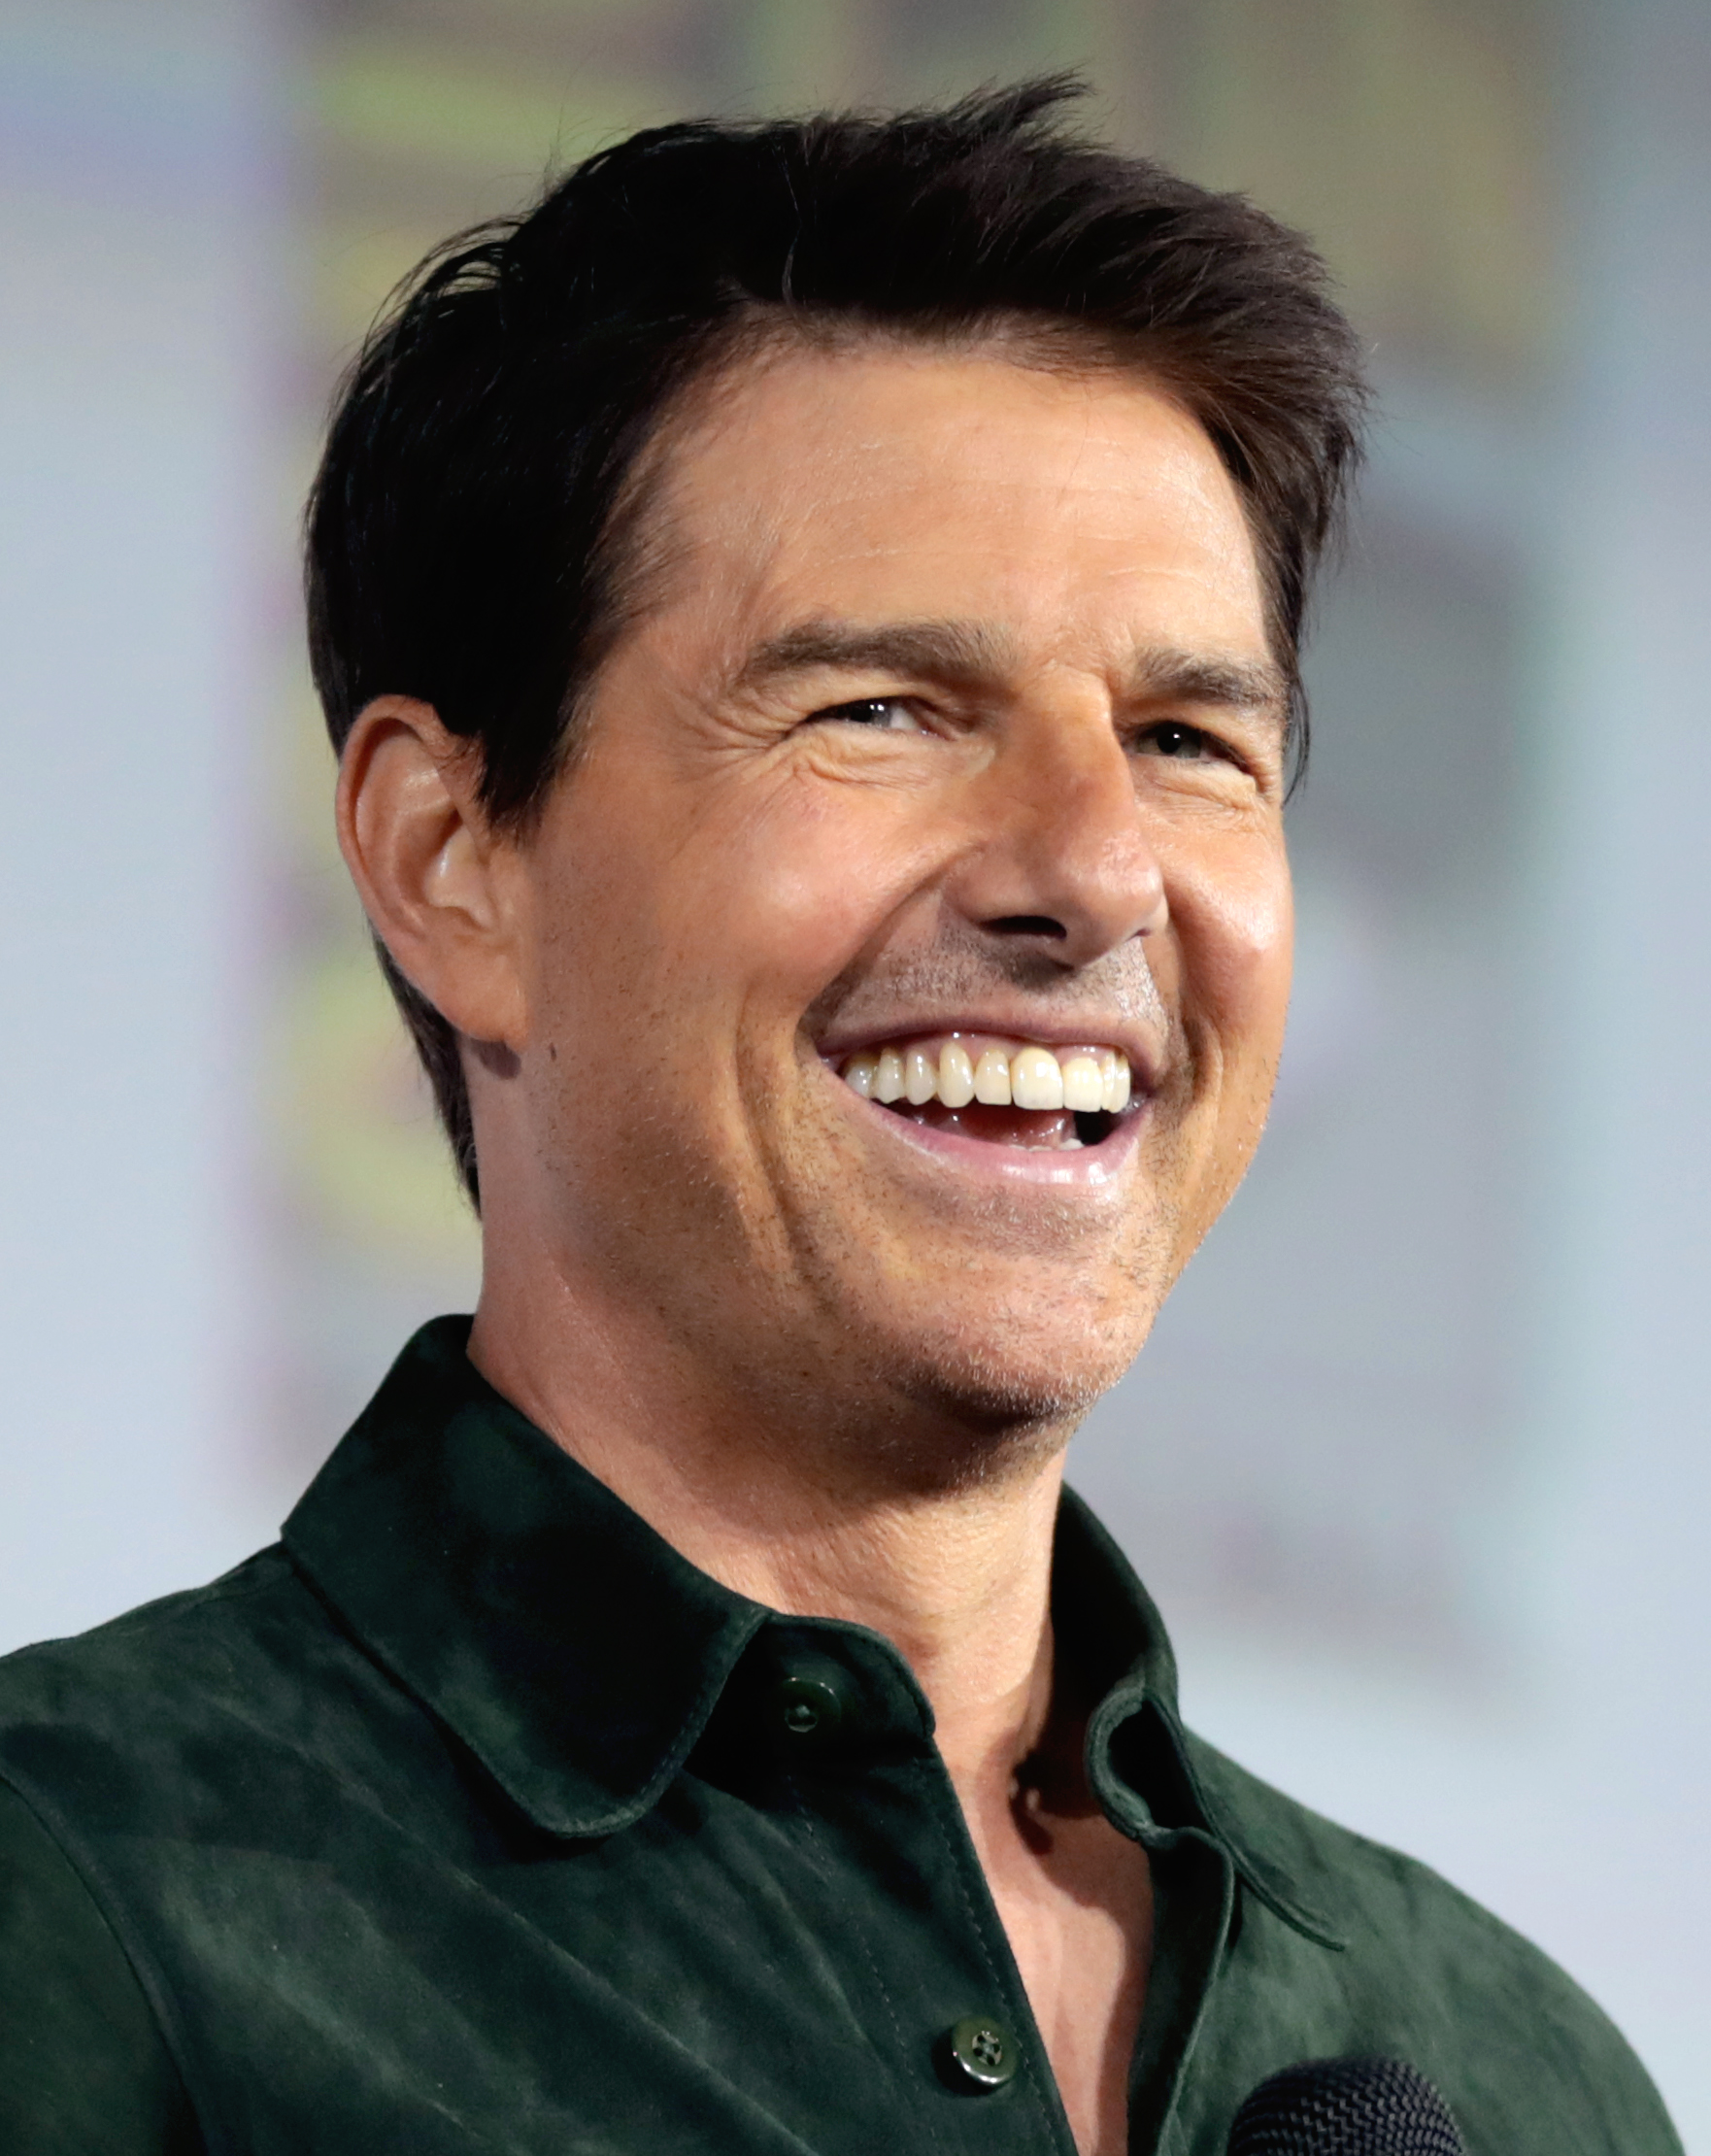 Tom Cruise is officially a space cadet